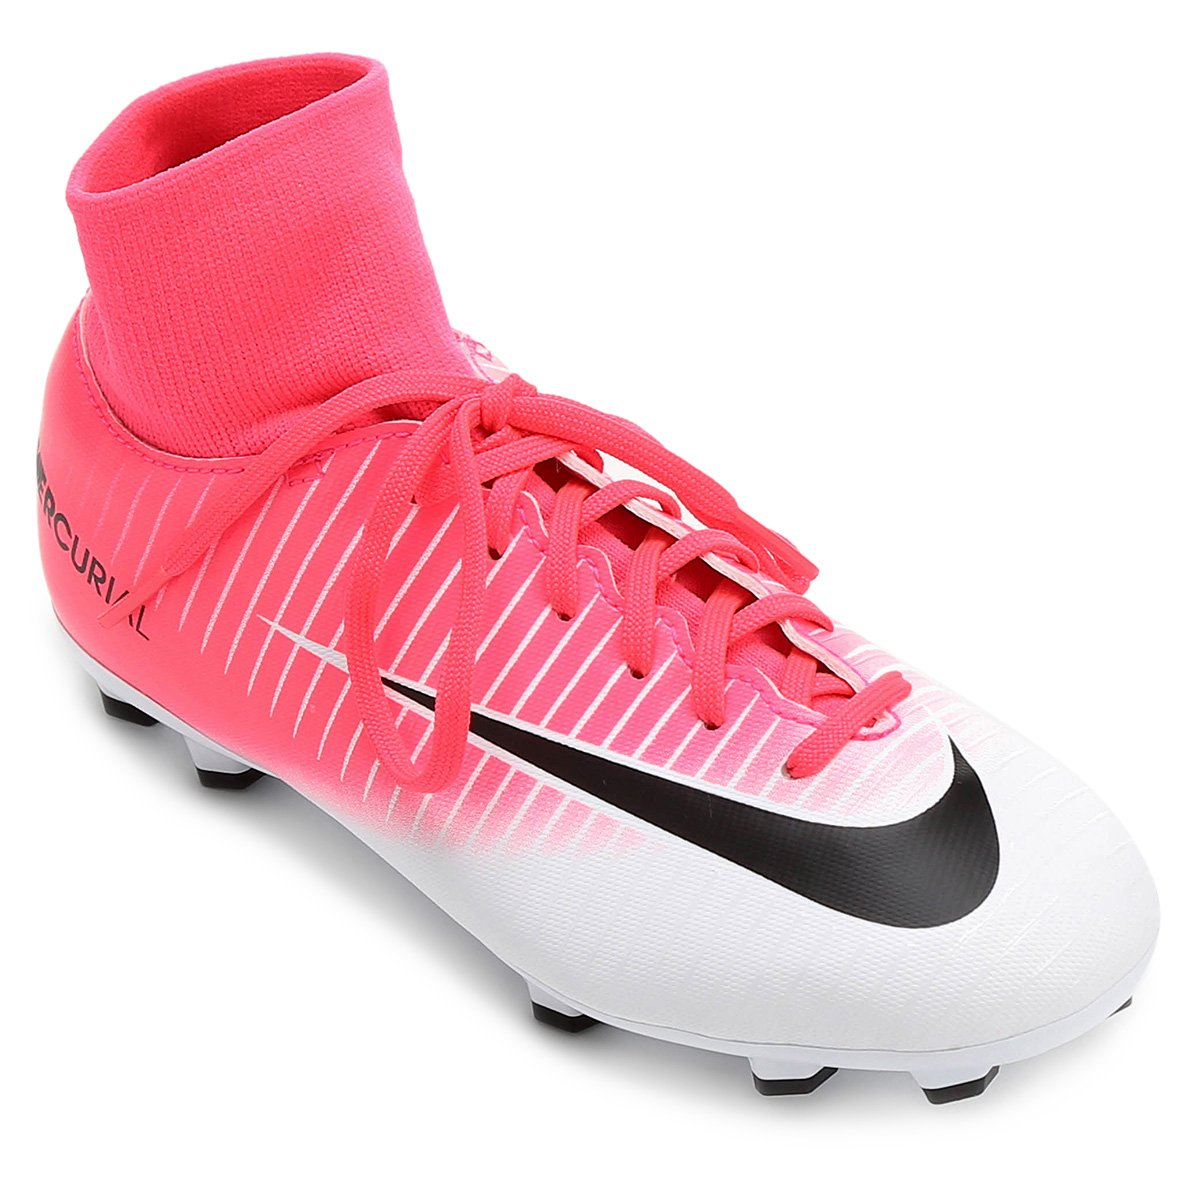 Chuteira Campo Infantil Nike Mercurial Victory 6 Dynamic Fit FG - Compre  Agora  790cc03baf56d